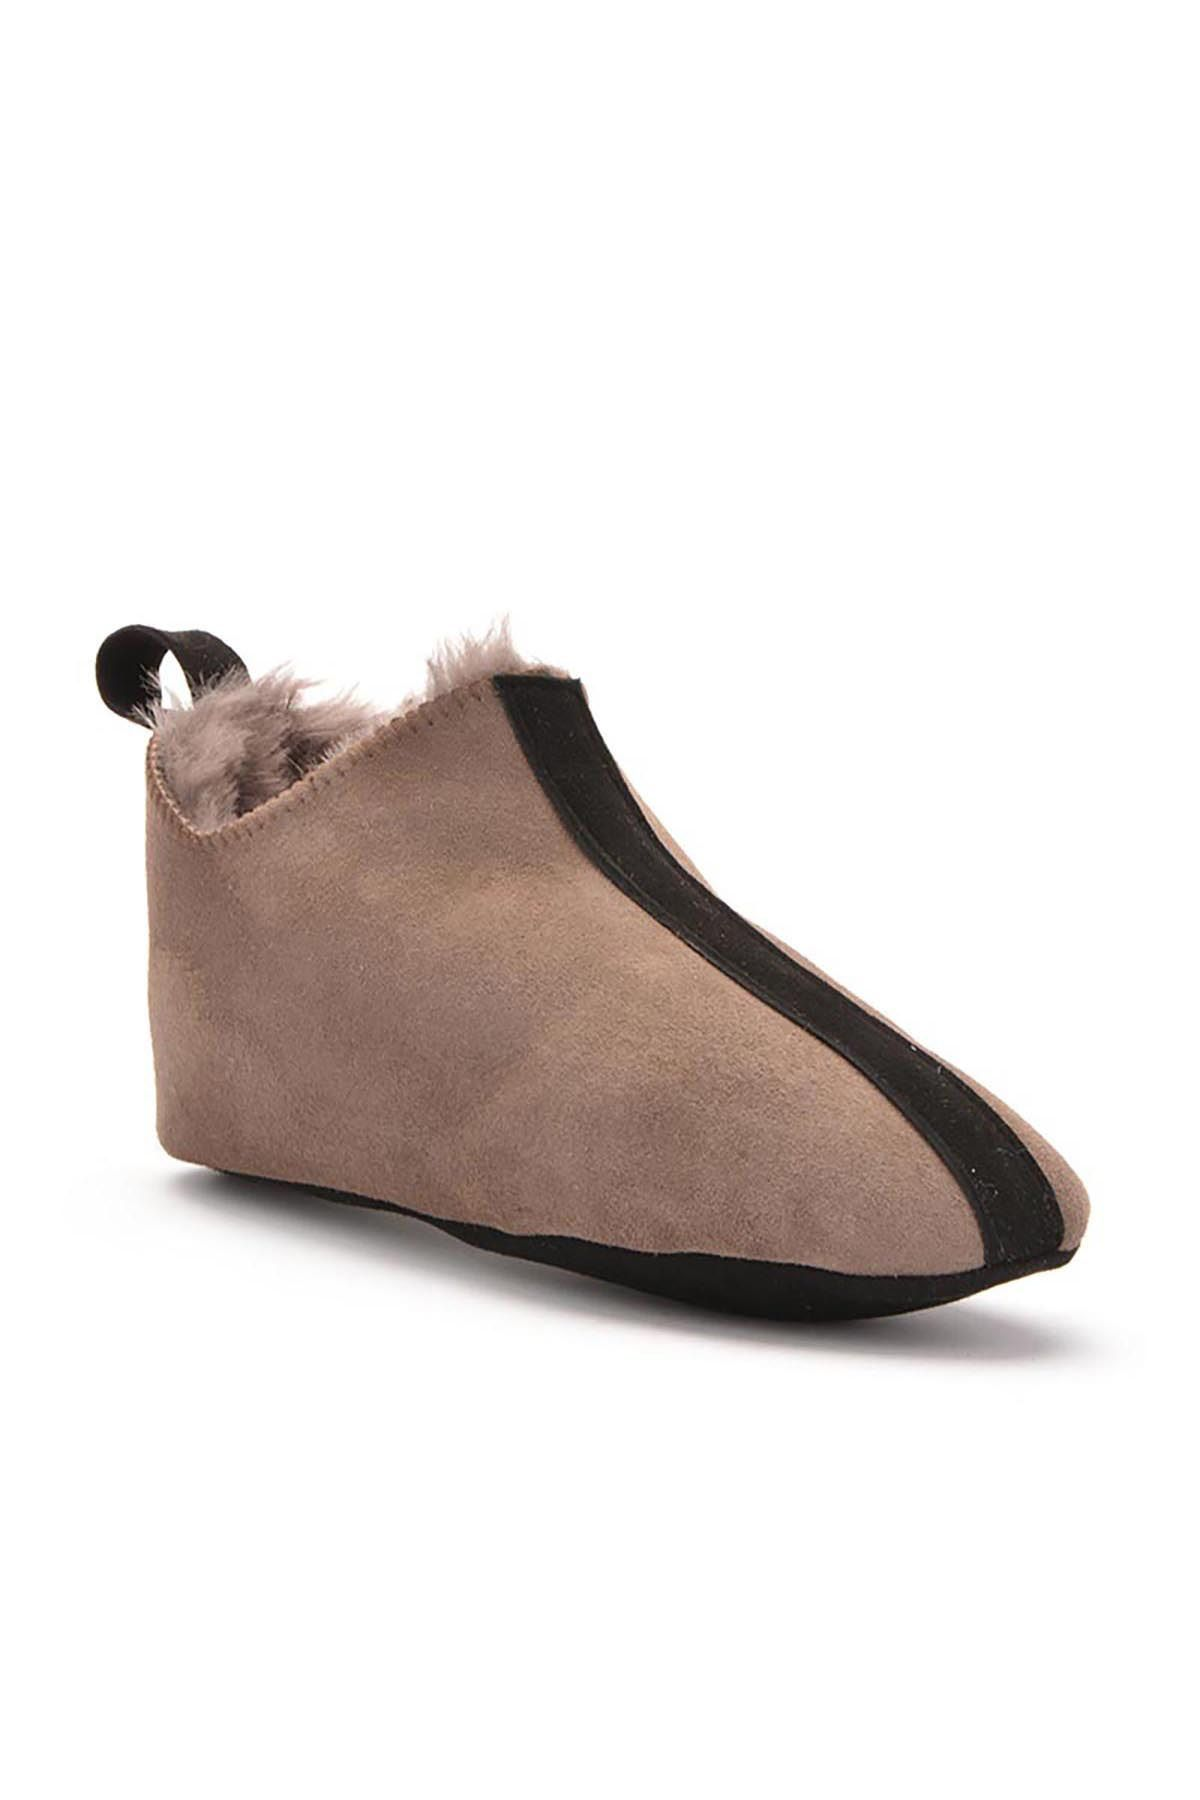 Pegia Kids House-Shoes From Genuine Fur Mink